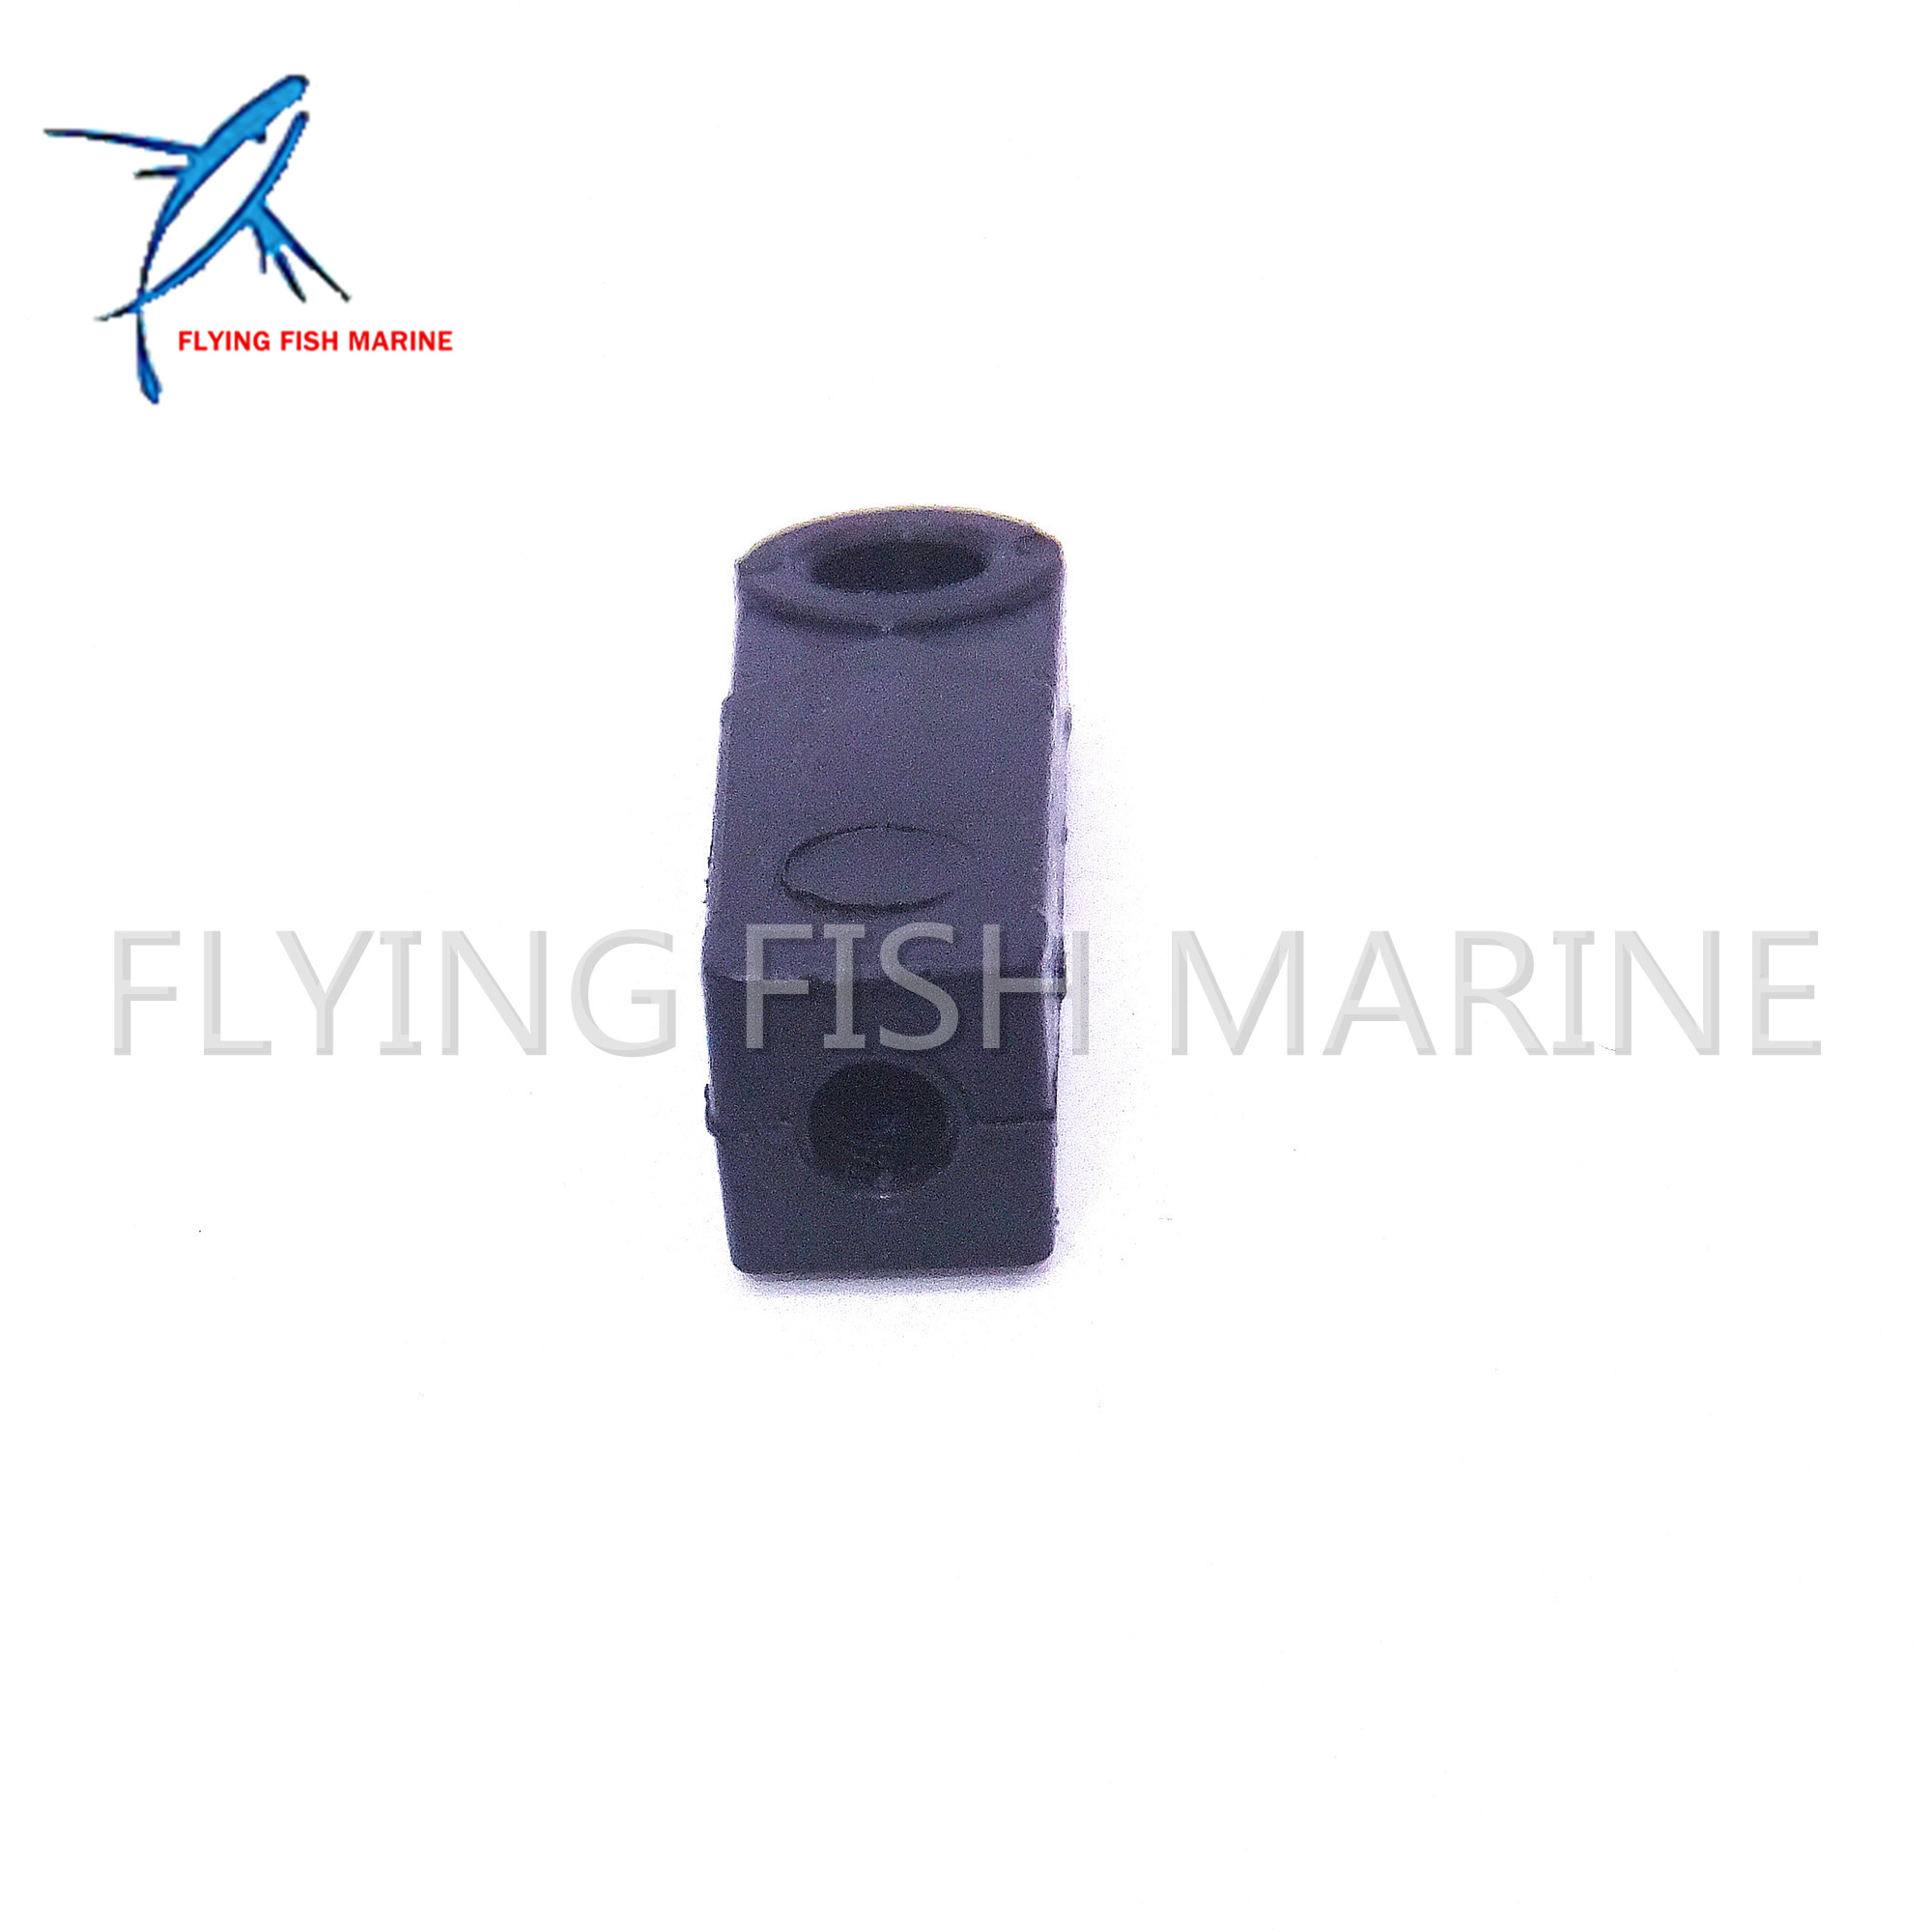 6E5-48344-00 Cable End Remote for Yamaha 6-300HP 1984-2012 Outboard